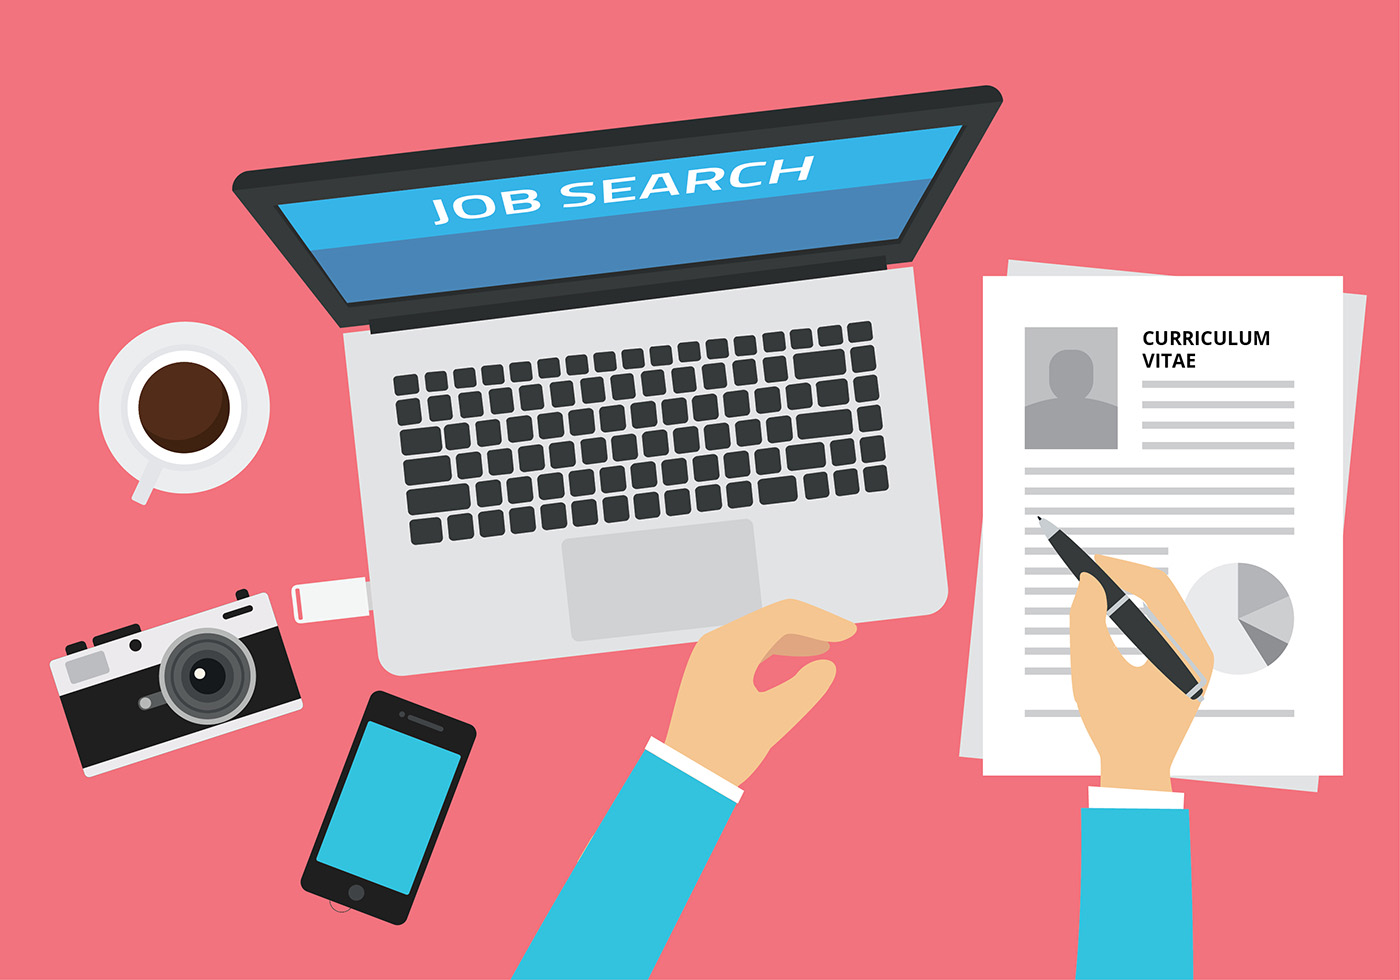 Job Search Illustration Free Vector Download Free